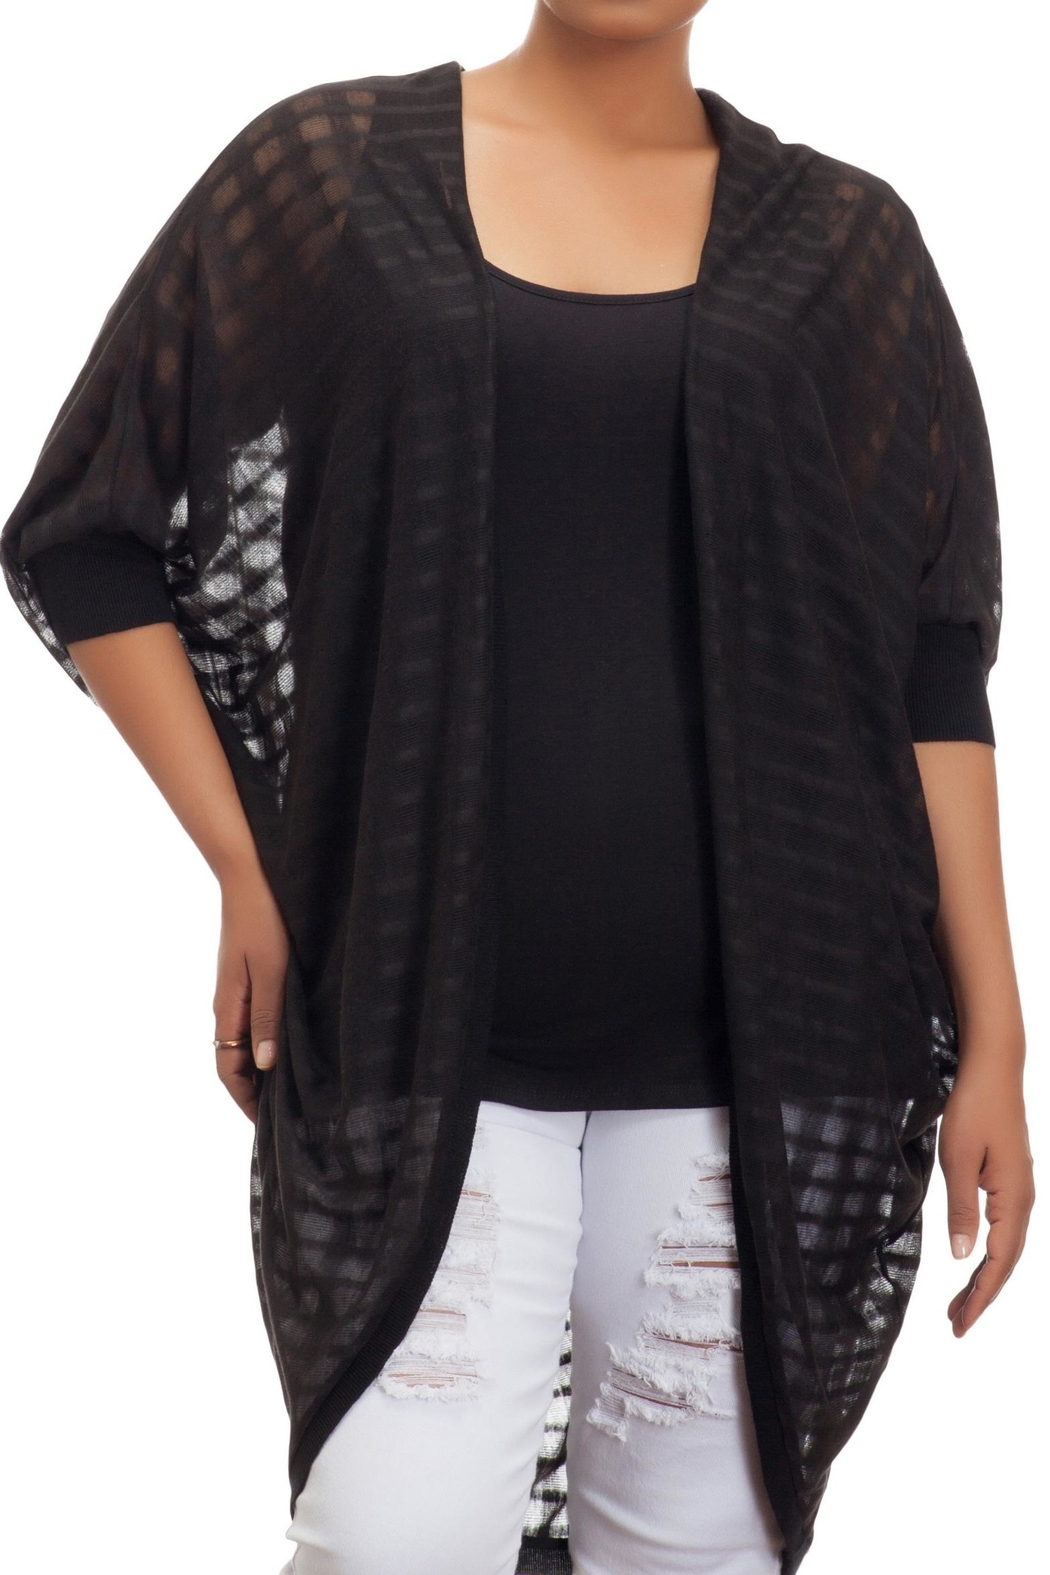 Full Figured Fashionista Long Black Shrug - Main Image